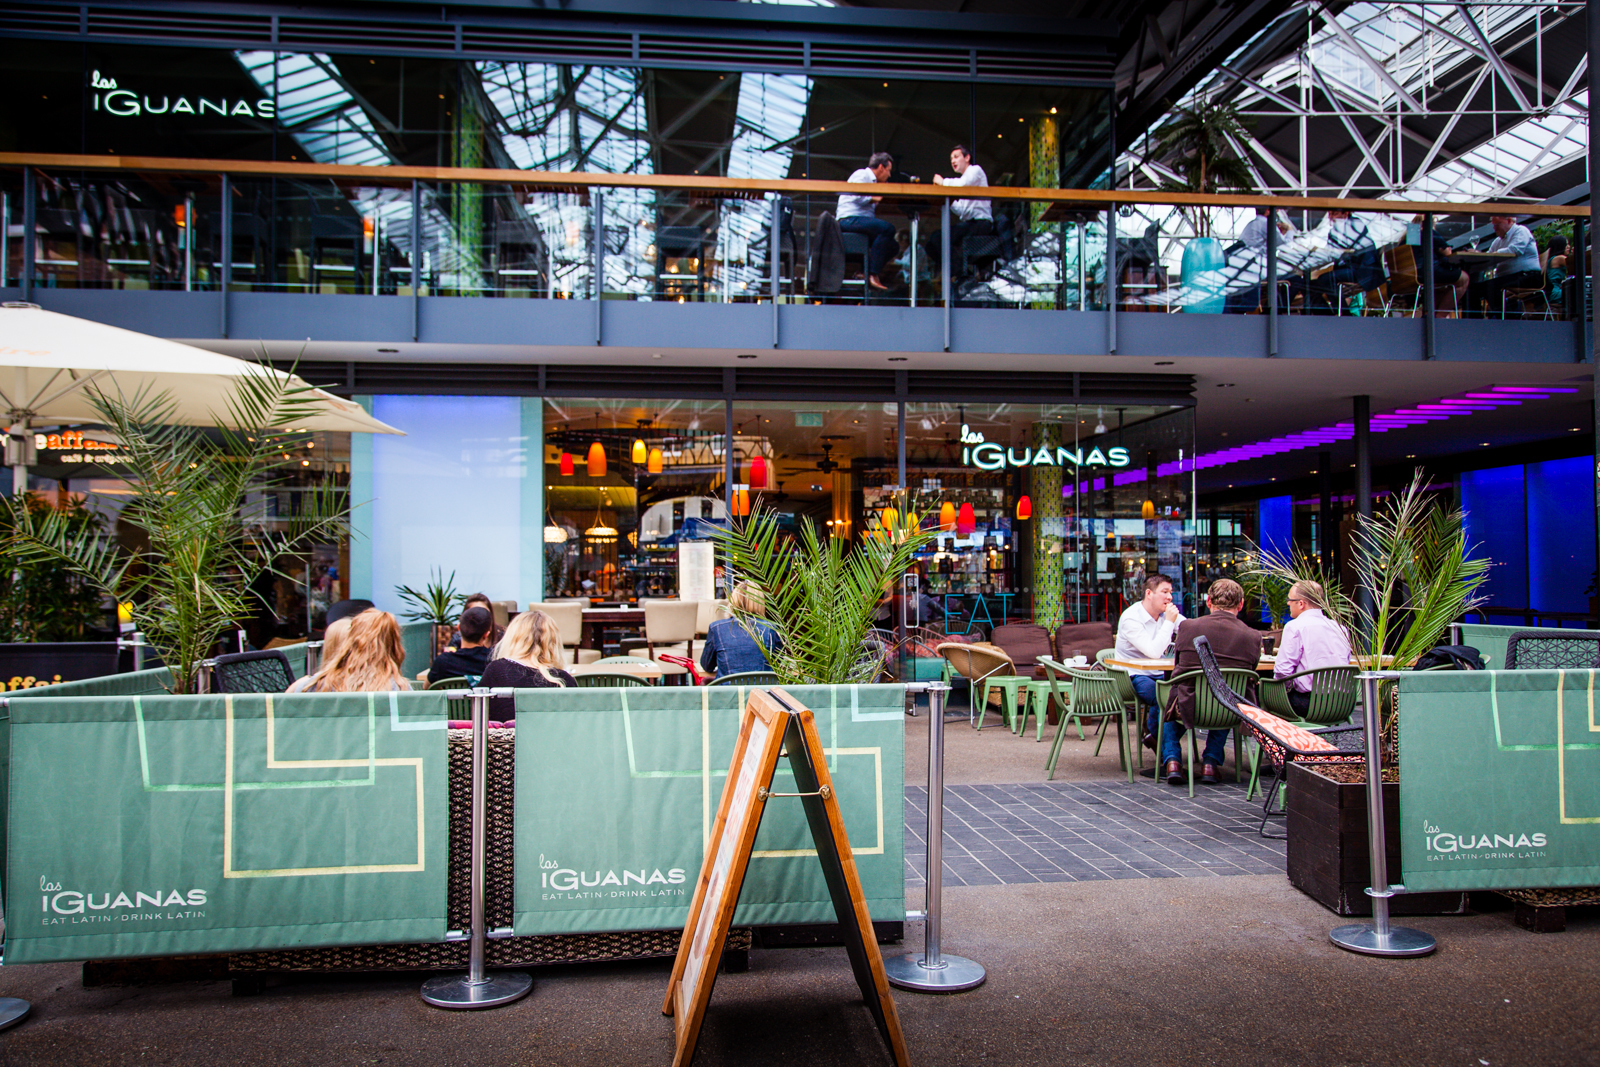 Reserve a table at Las Iguanas - Spitalfields